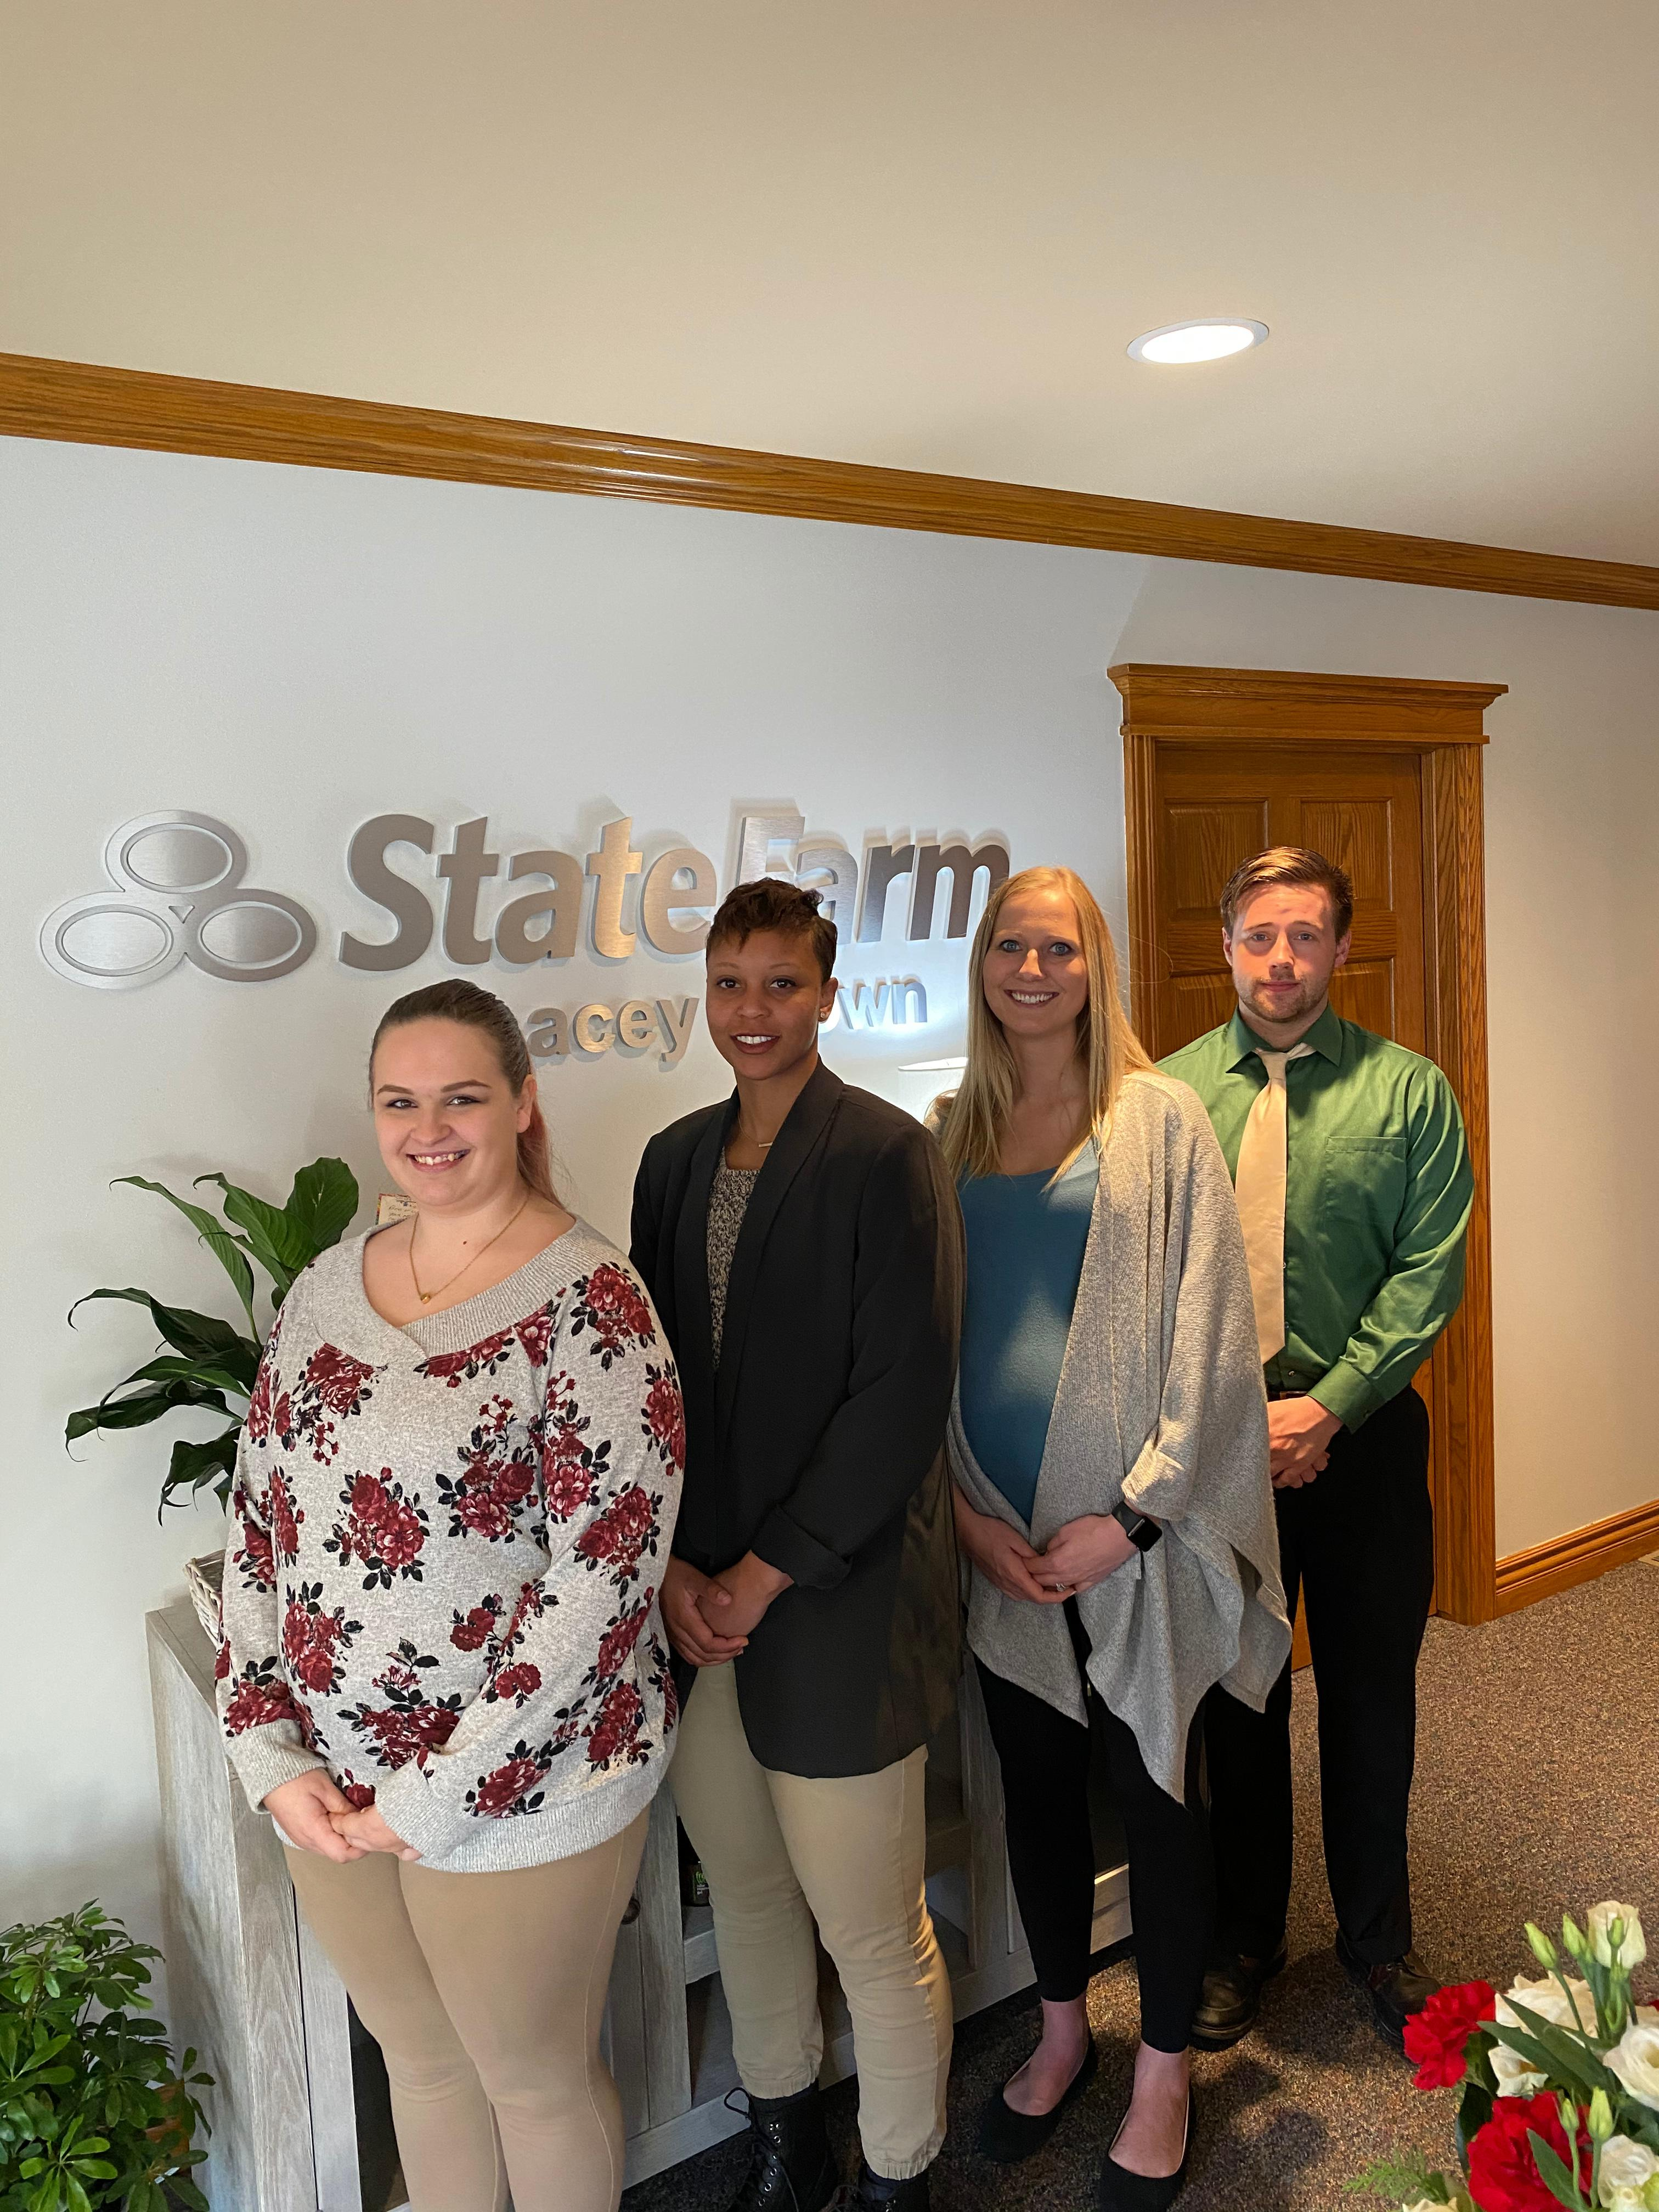 The Lacey Brown Team Lacey Brown - State Farm Insurance Agent Ralston (402)779-8338